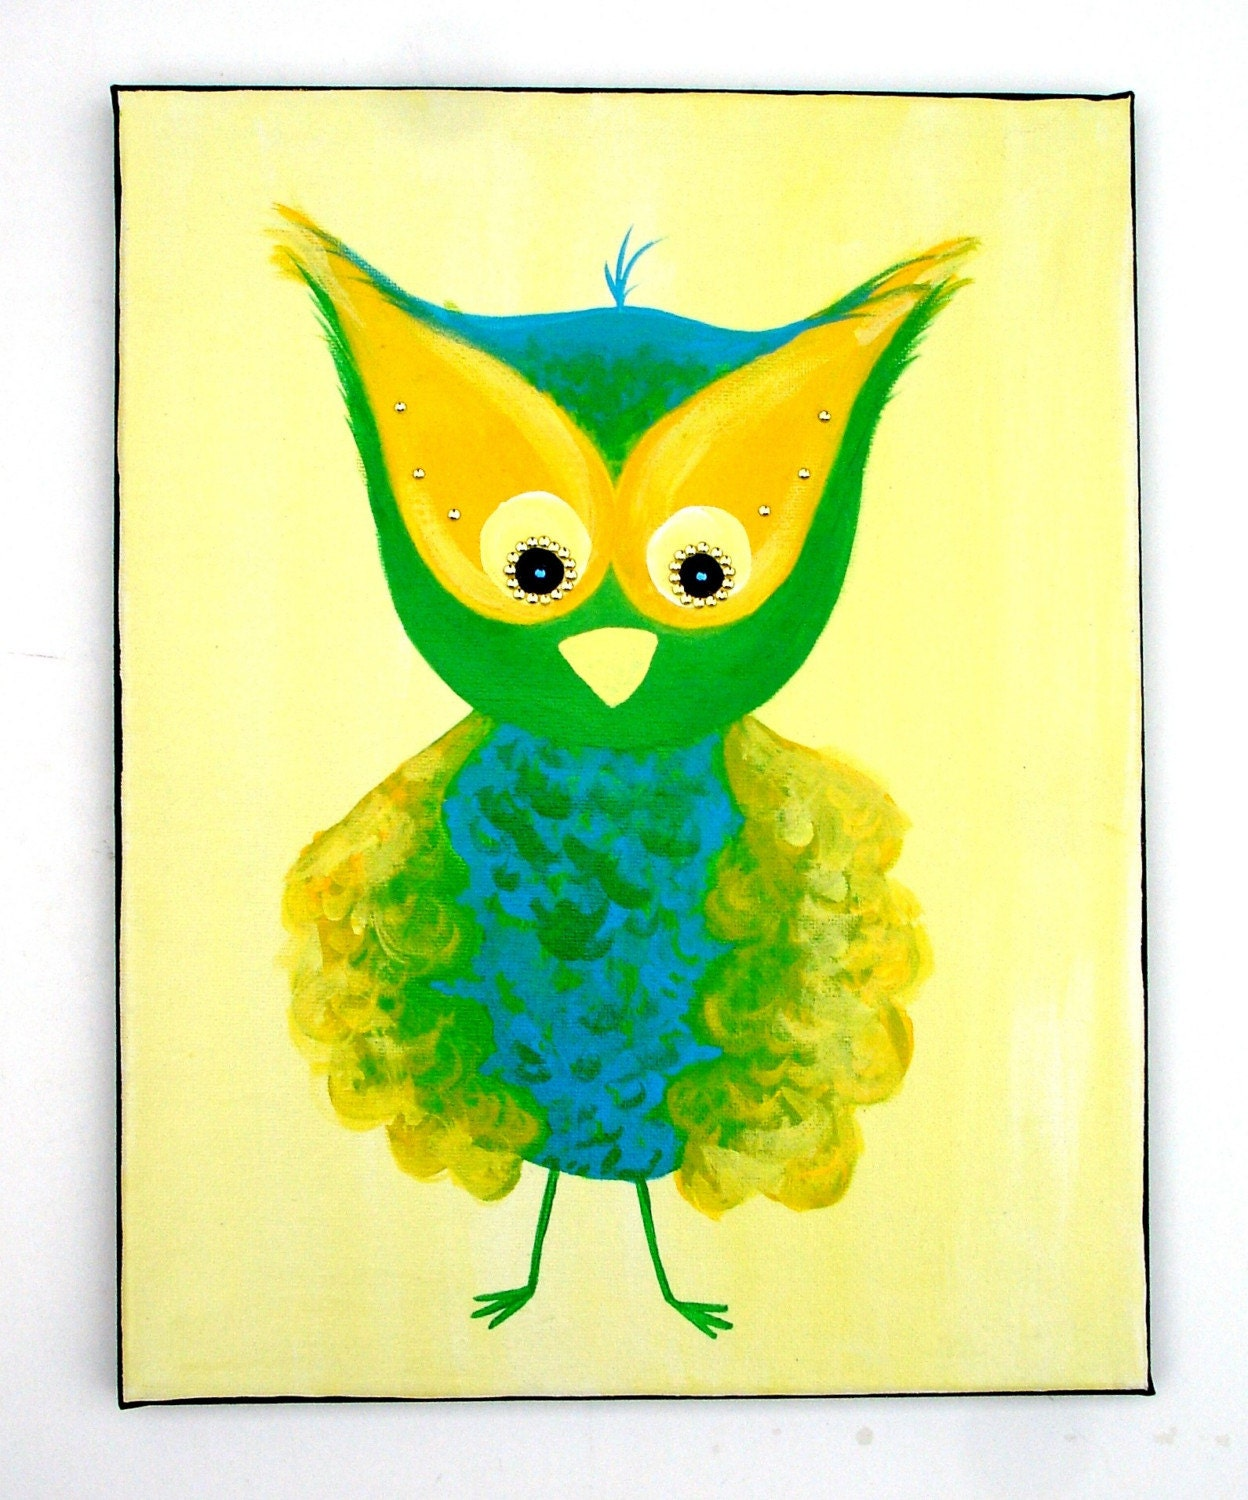 Original Owl Painting, Fun Green, Yellow, and Blue - Acrylic on 11 x 14 Canvas with Sparkly Rhinestones